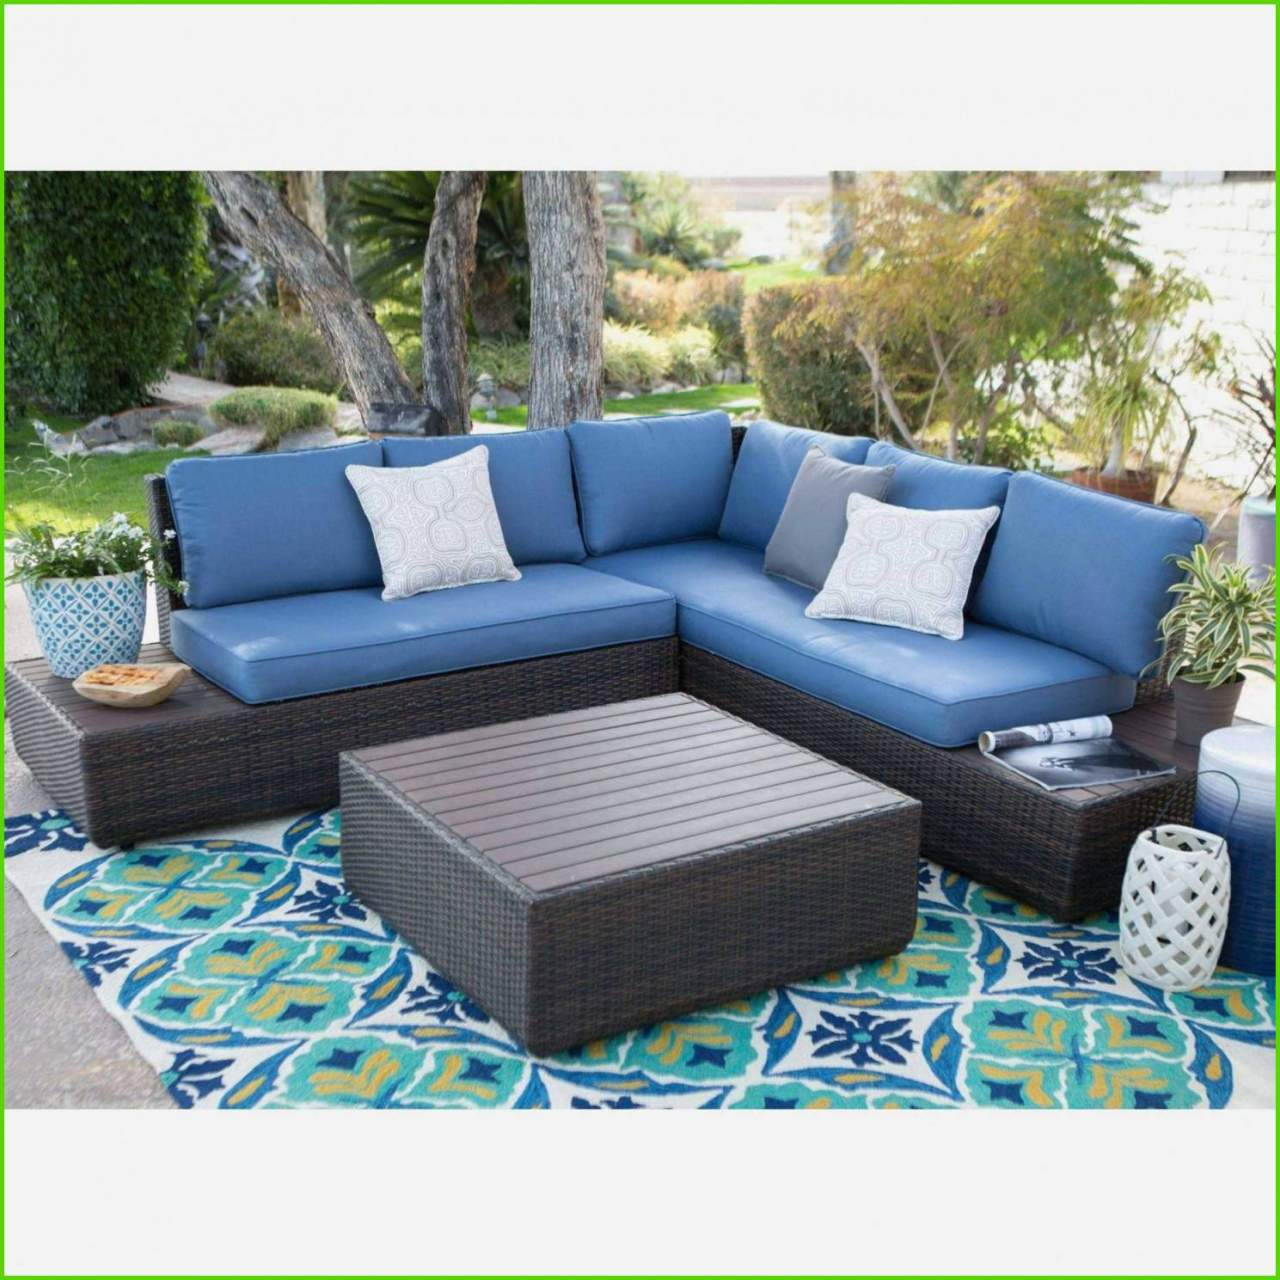 outdoor daybed lounge sofa garten rattan garten lounge rattan lounge weiss elegant durch outdoor daybed